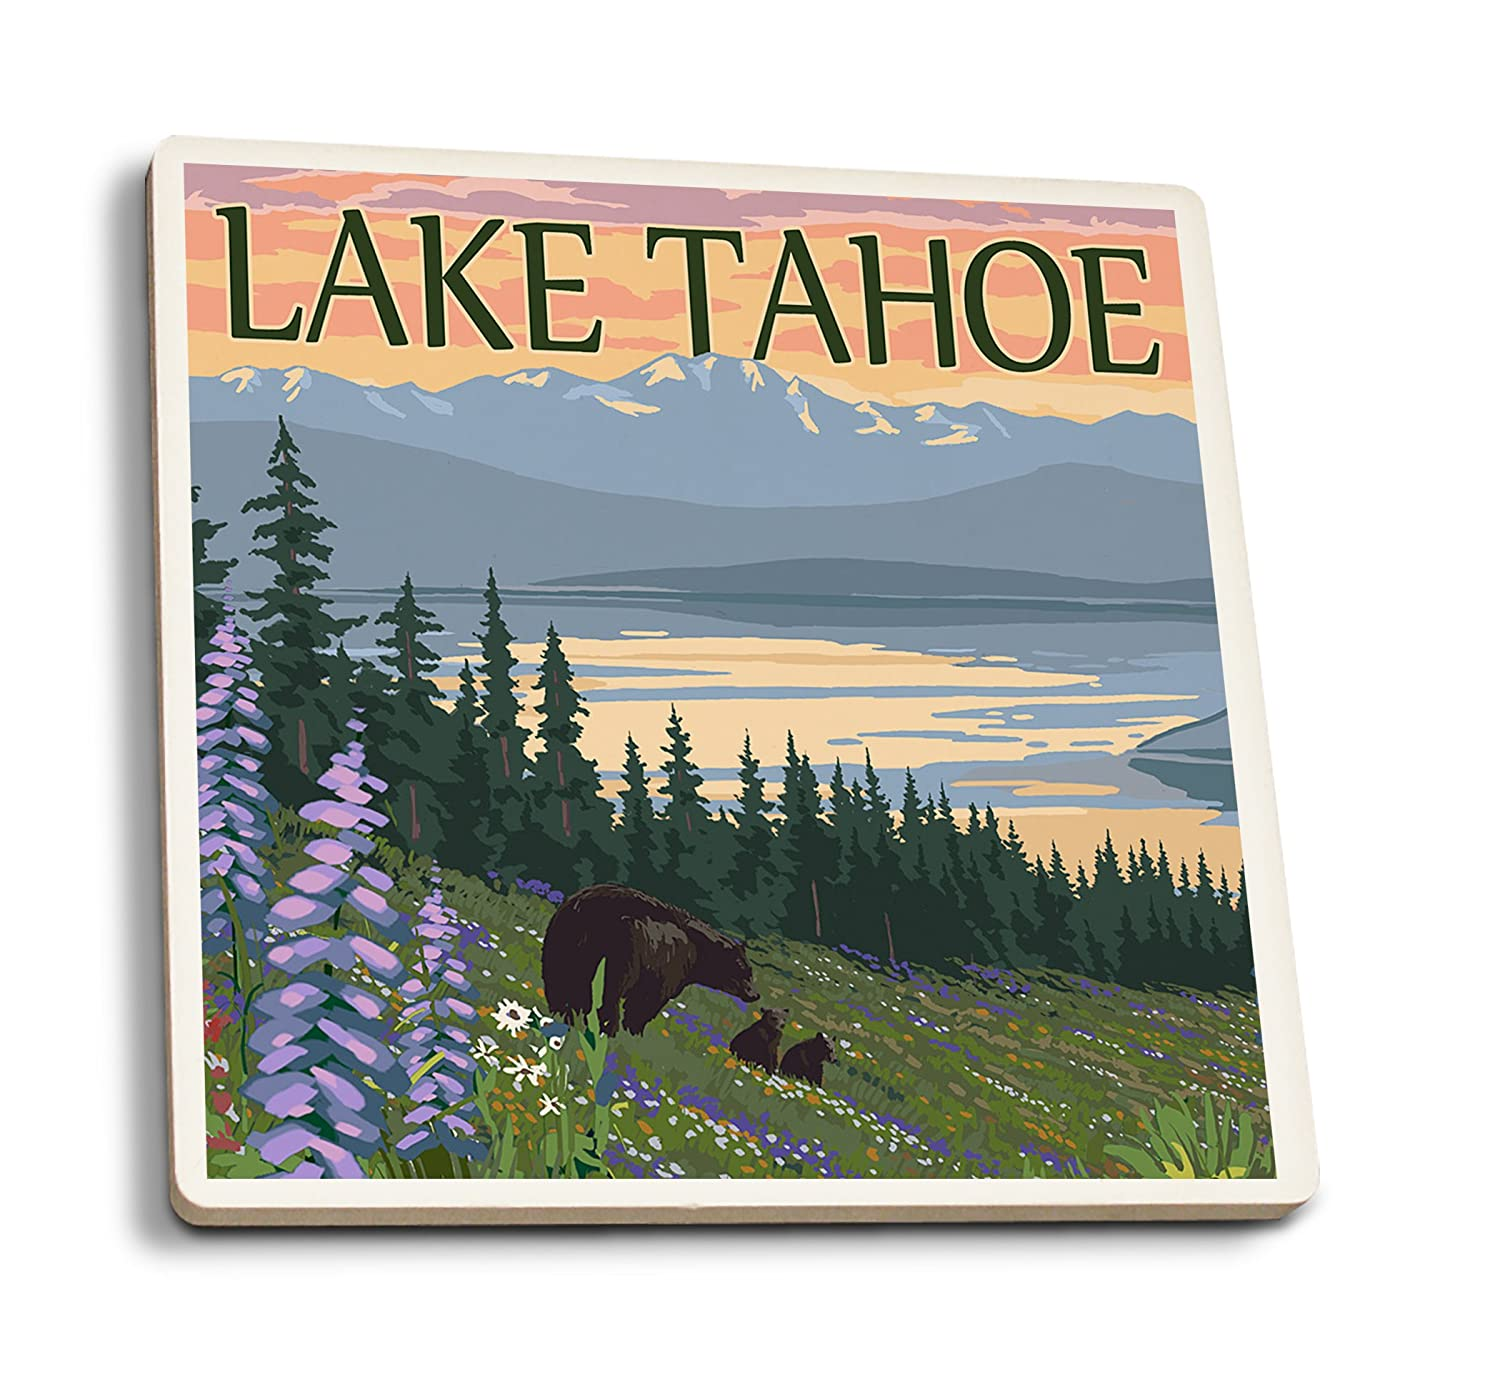 Lake Tahoe – Bear Family and Spring Flowers 4 Coaster Set LANT-46392-CT B0192R79C8 4 Coaster Set4 Coaster Set